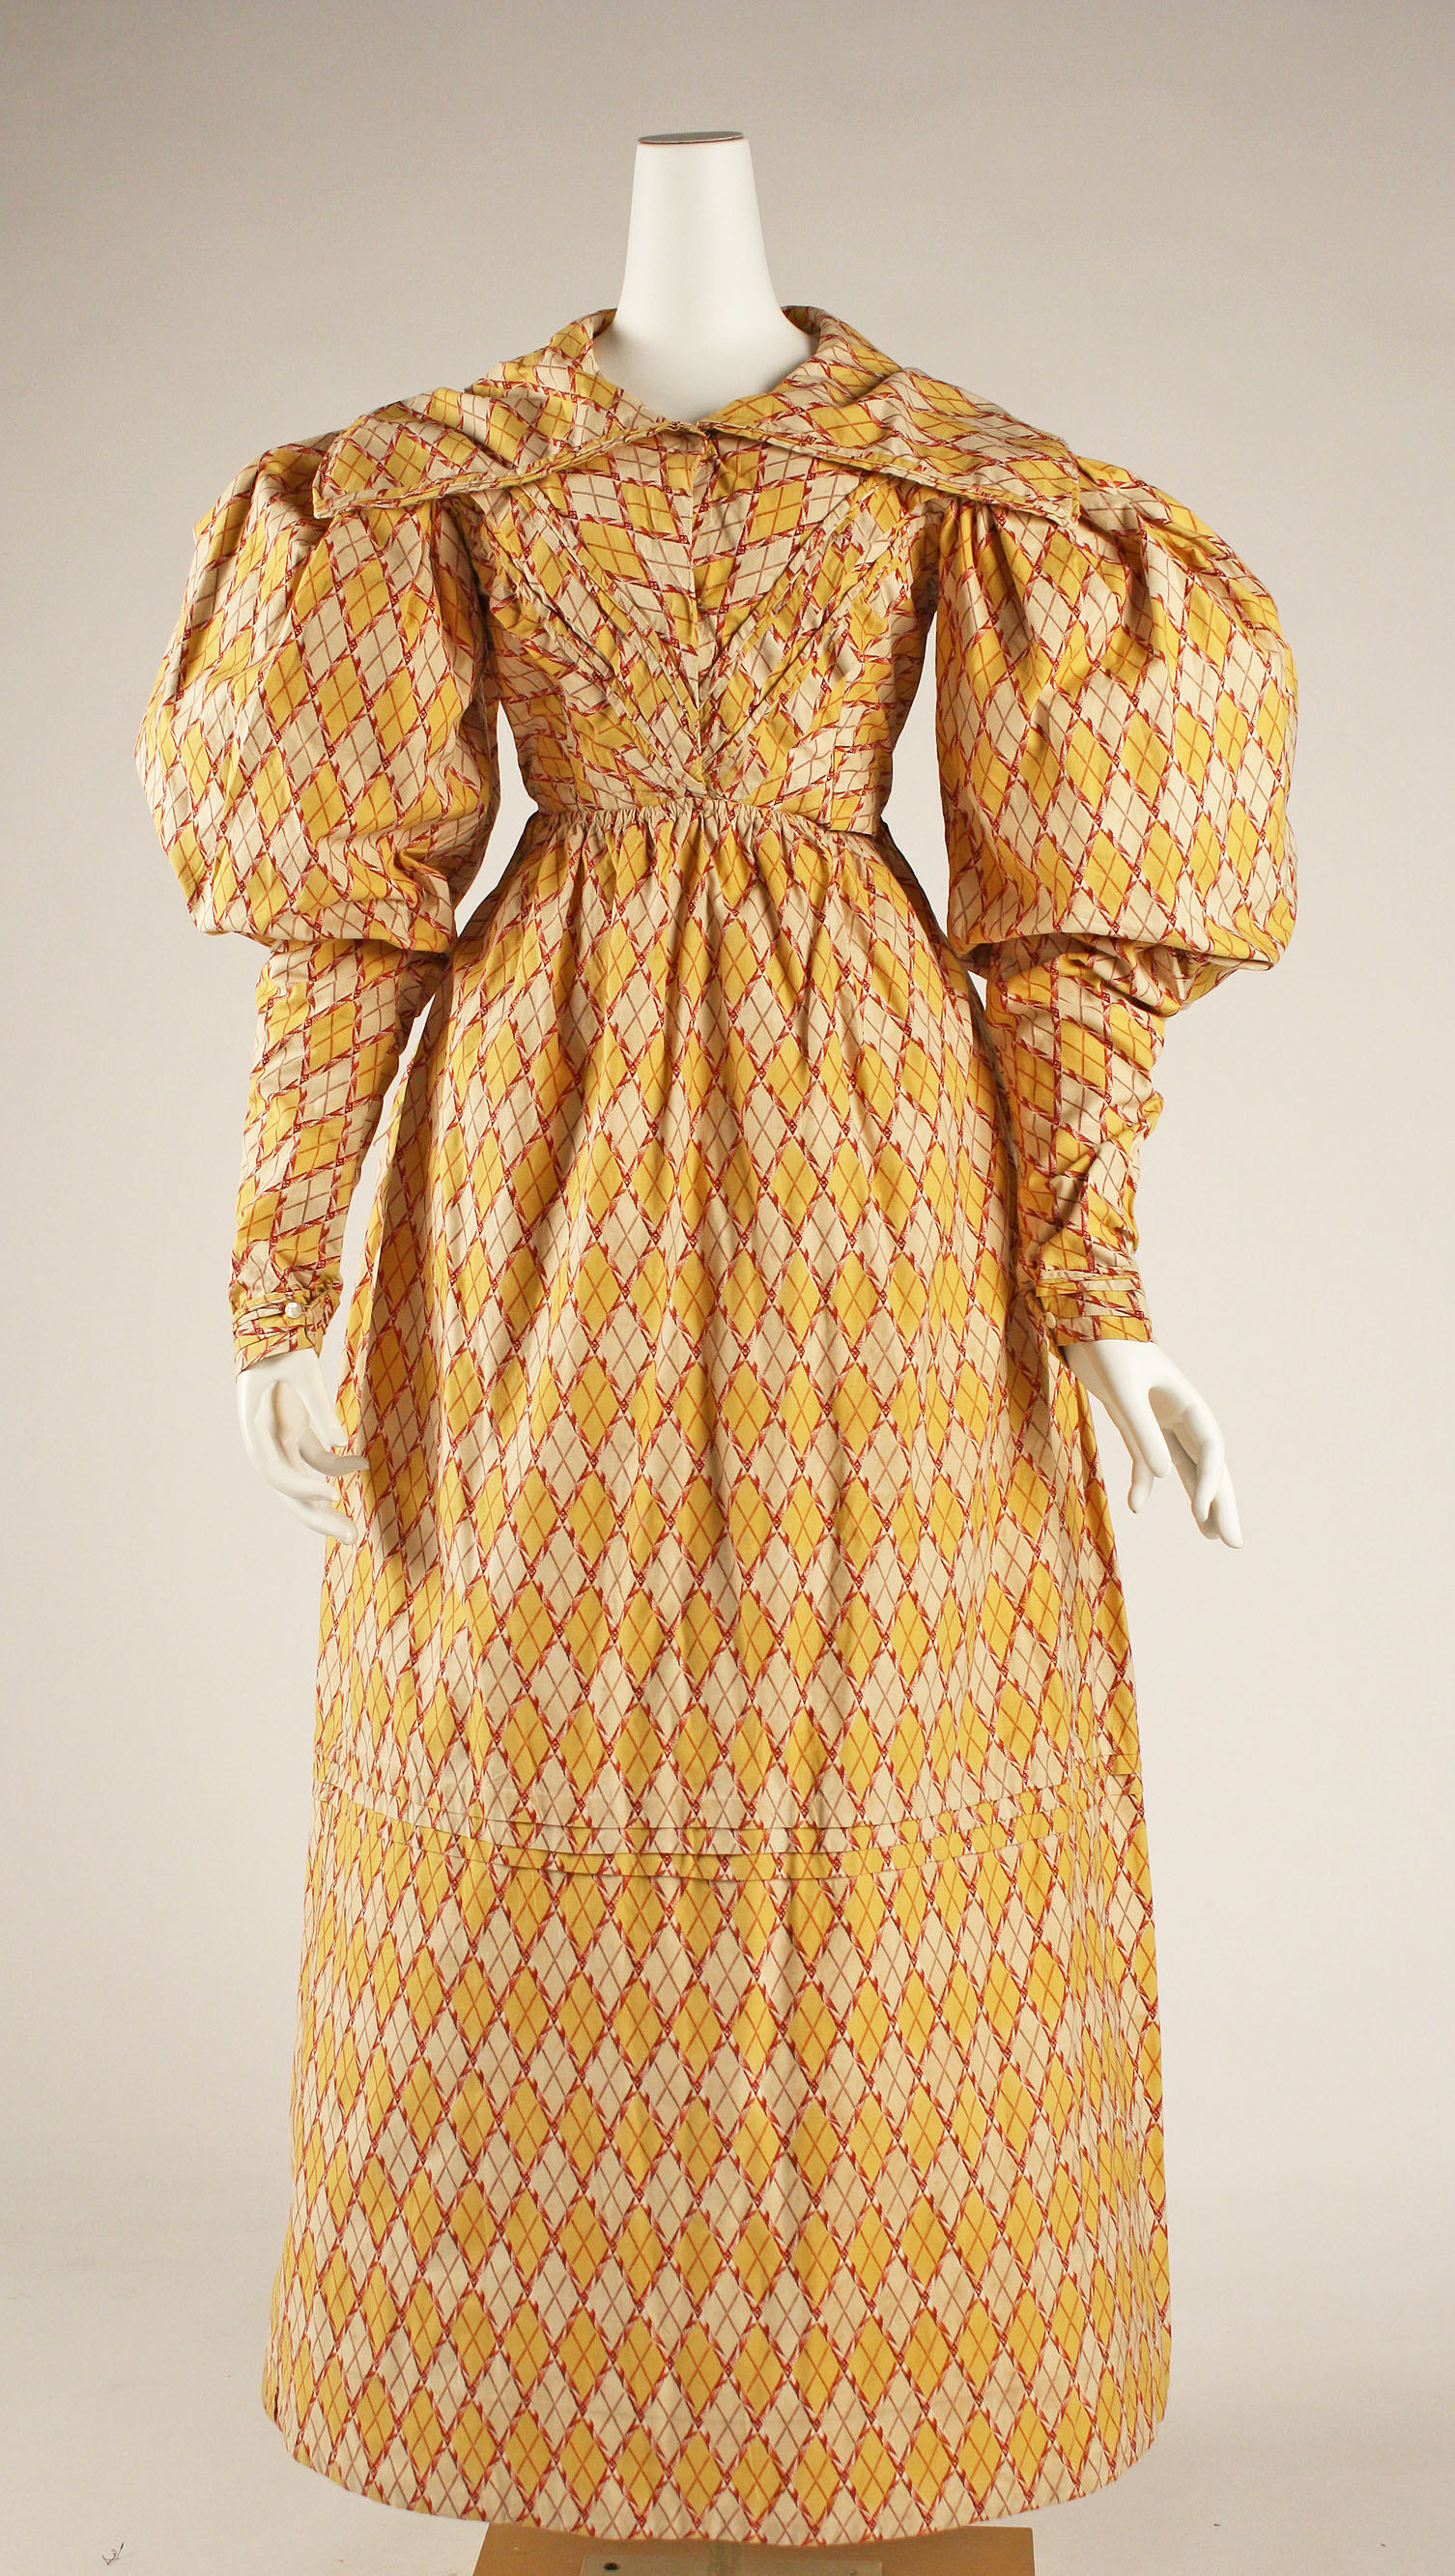 Cotton in Early 1800 Dresses